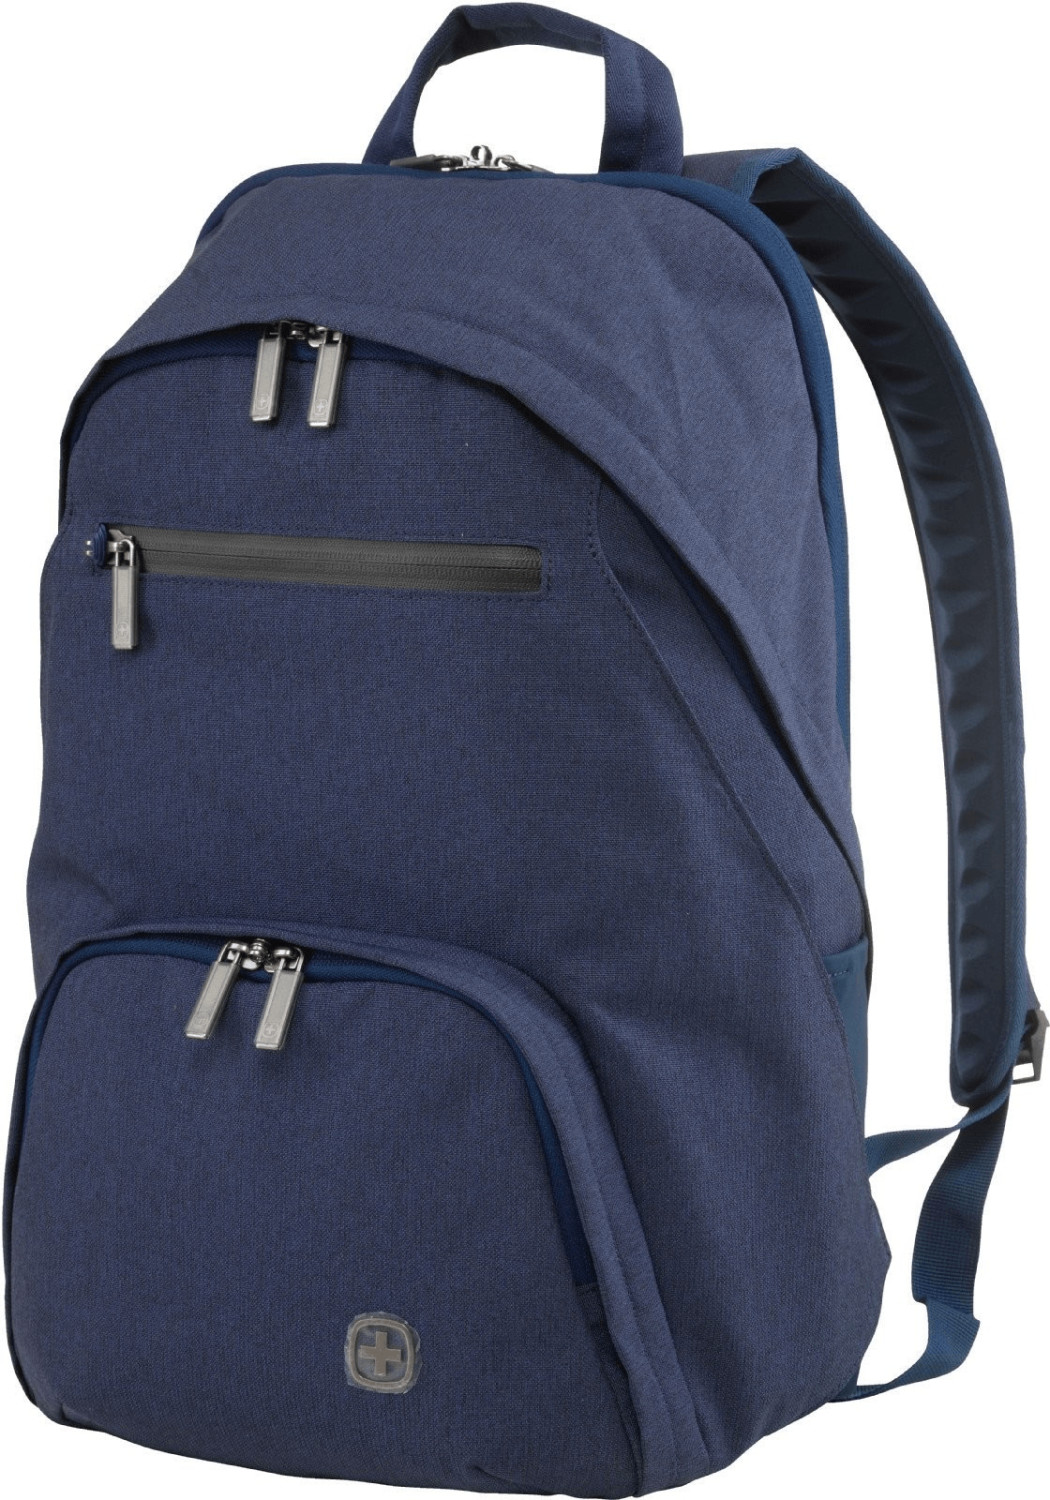 Wenger CityDrive Backpack navy